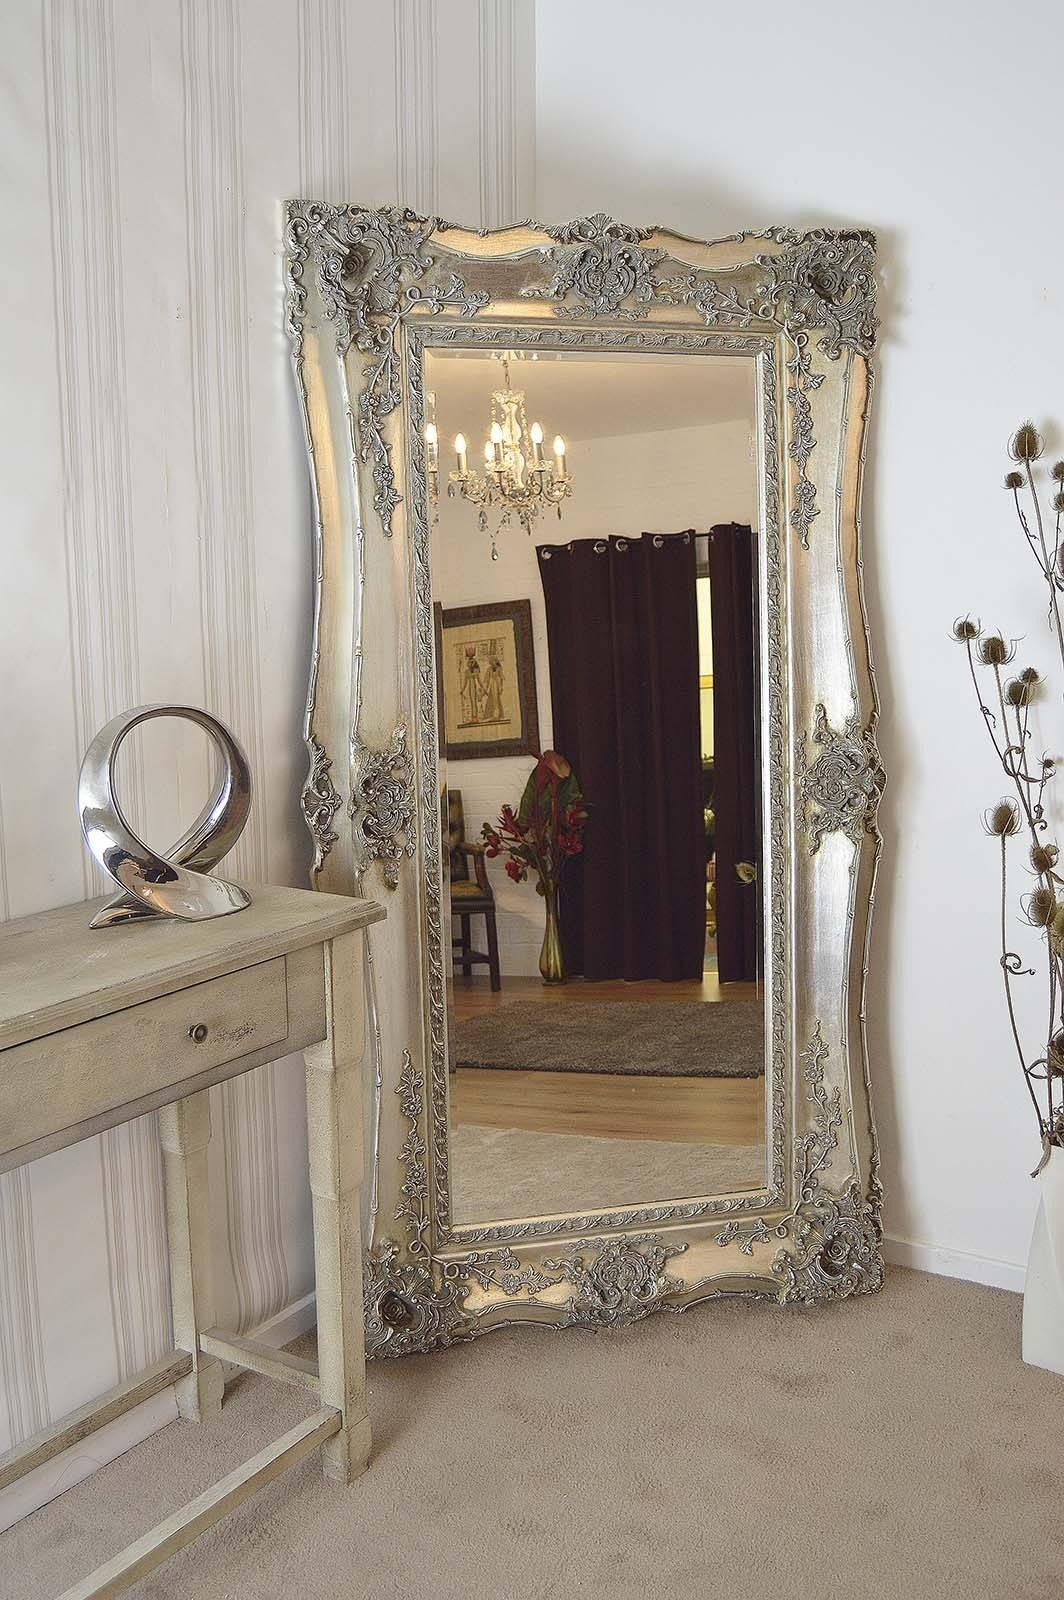 Antique Full Length Wall Mirrors Antique Wood Framed Wall Mirrors For Full Length Antique Mirrors (View 4 of 15)